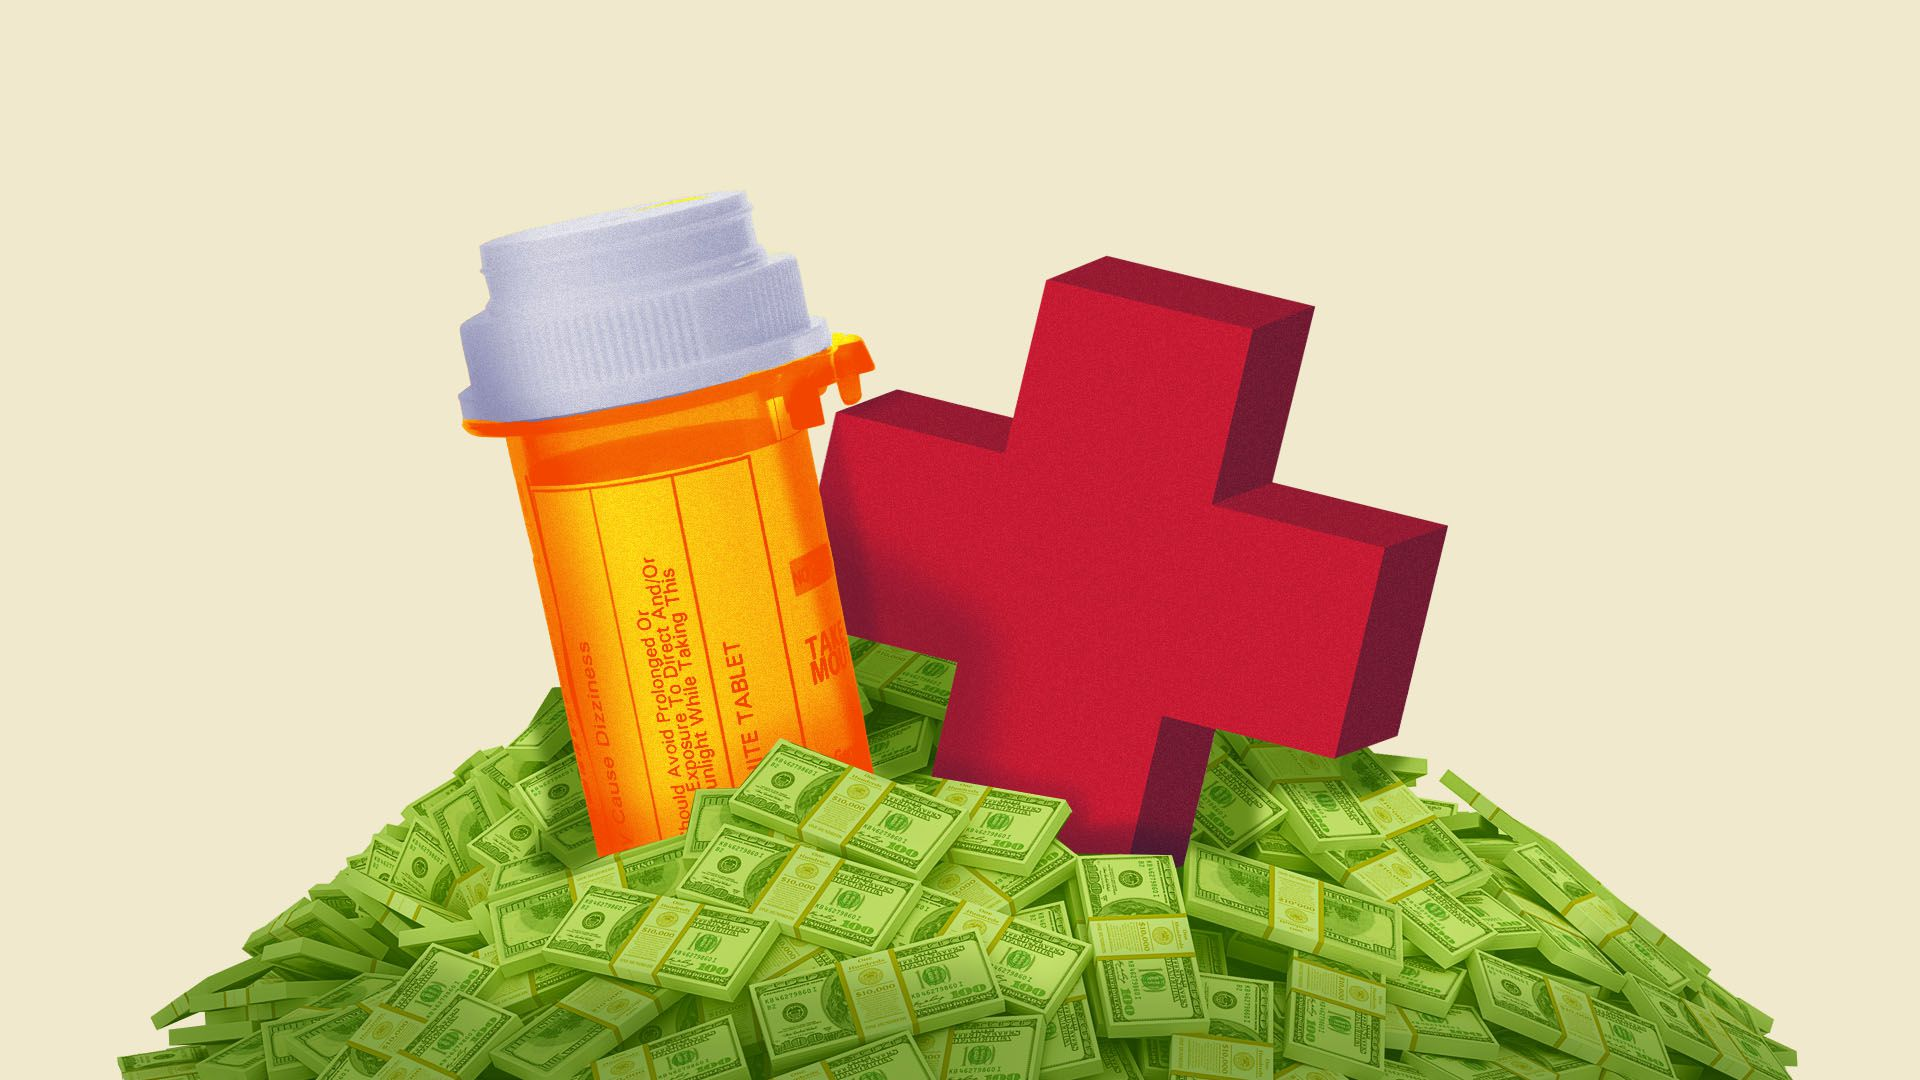 Illustration of a red cross and a pill bottle in a pile of money